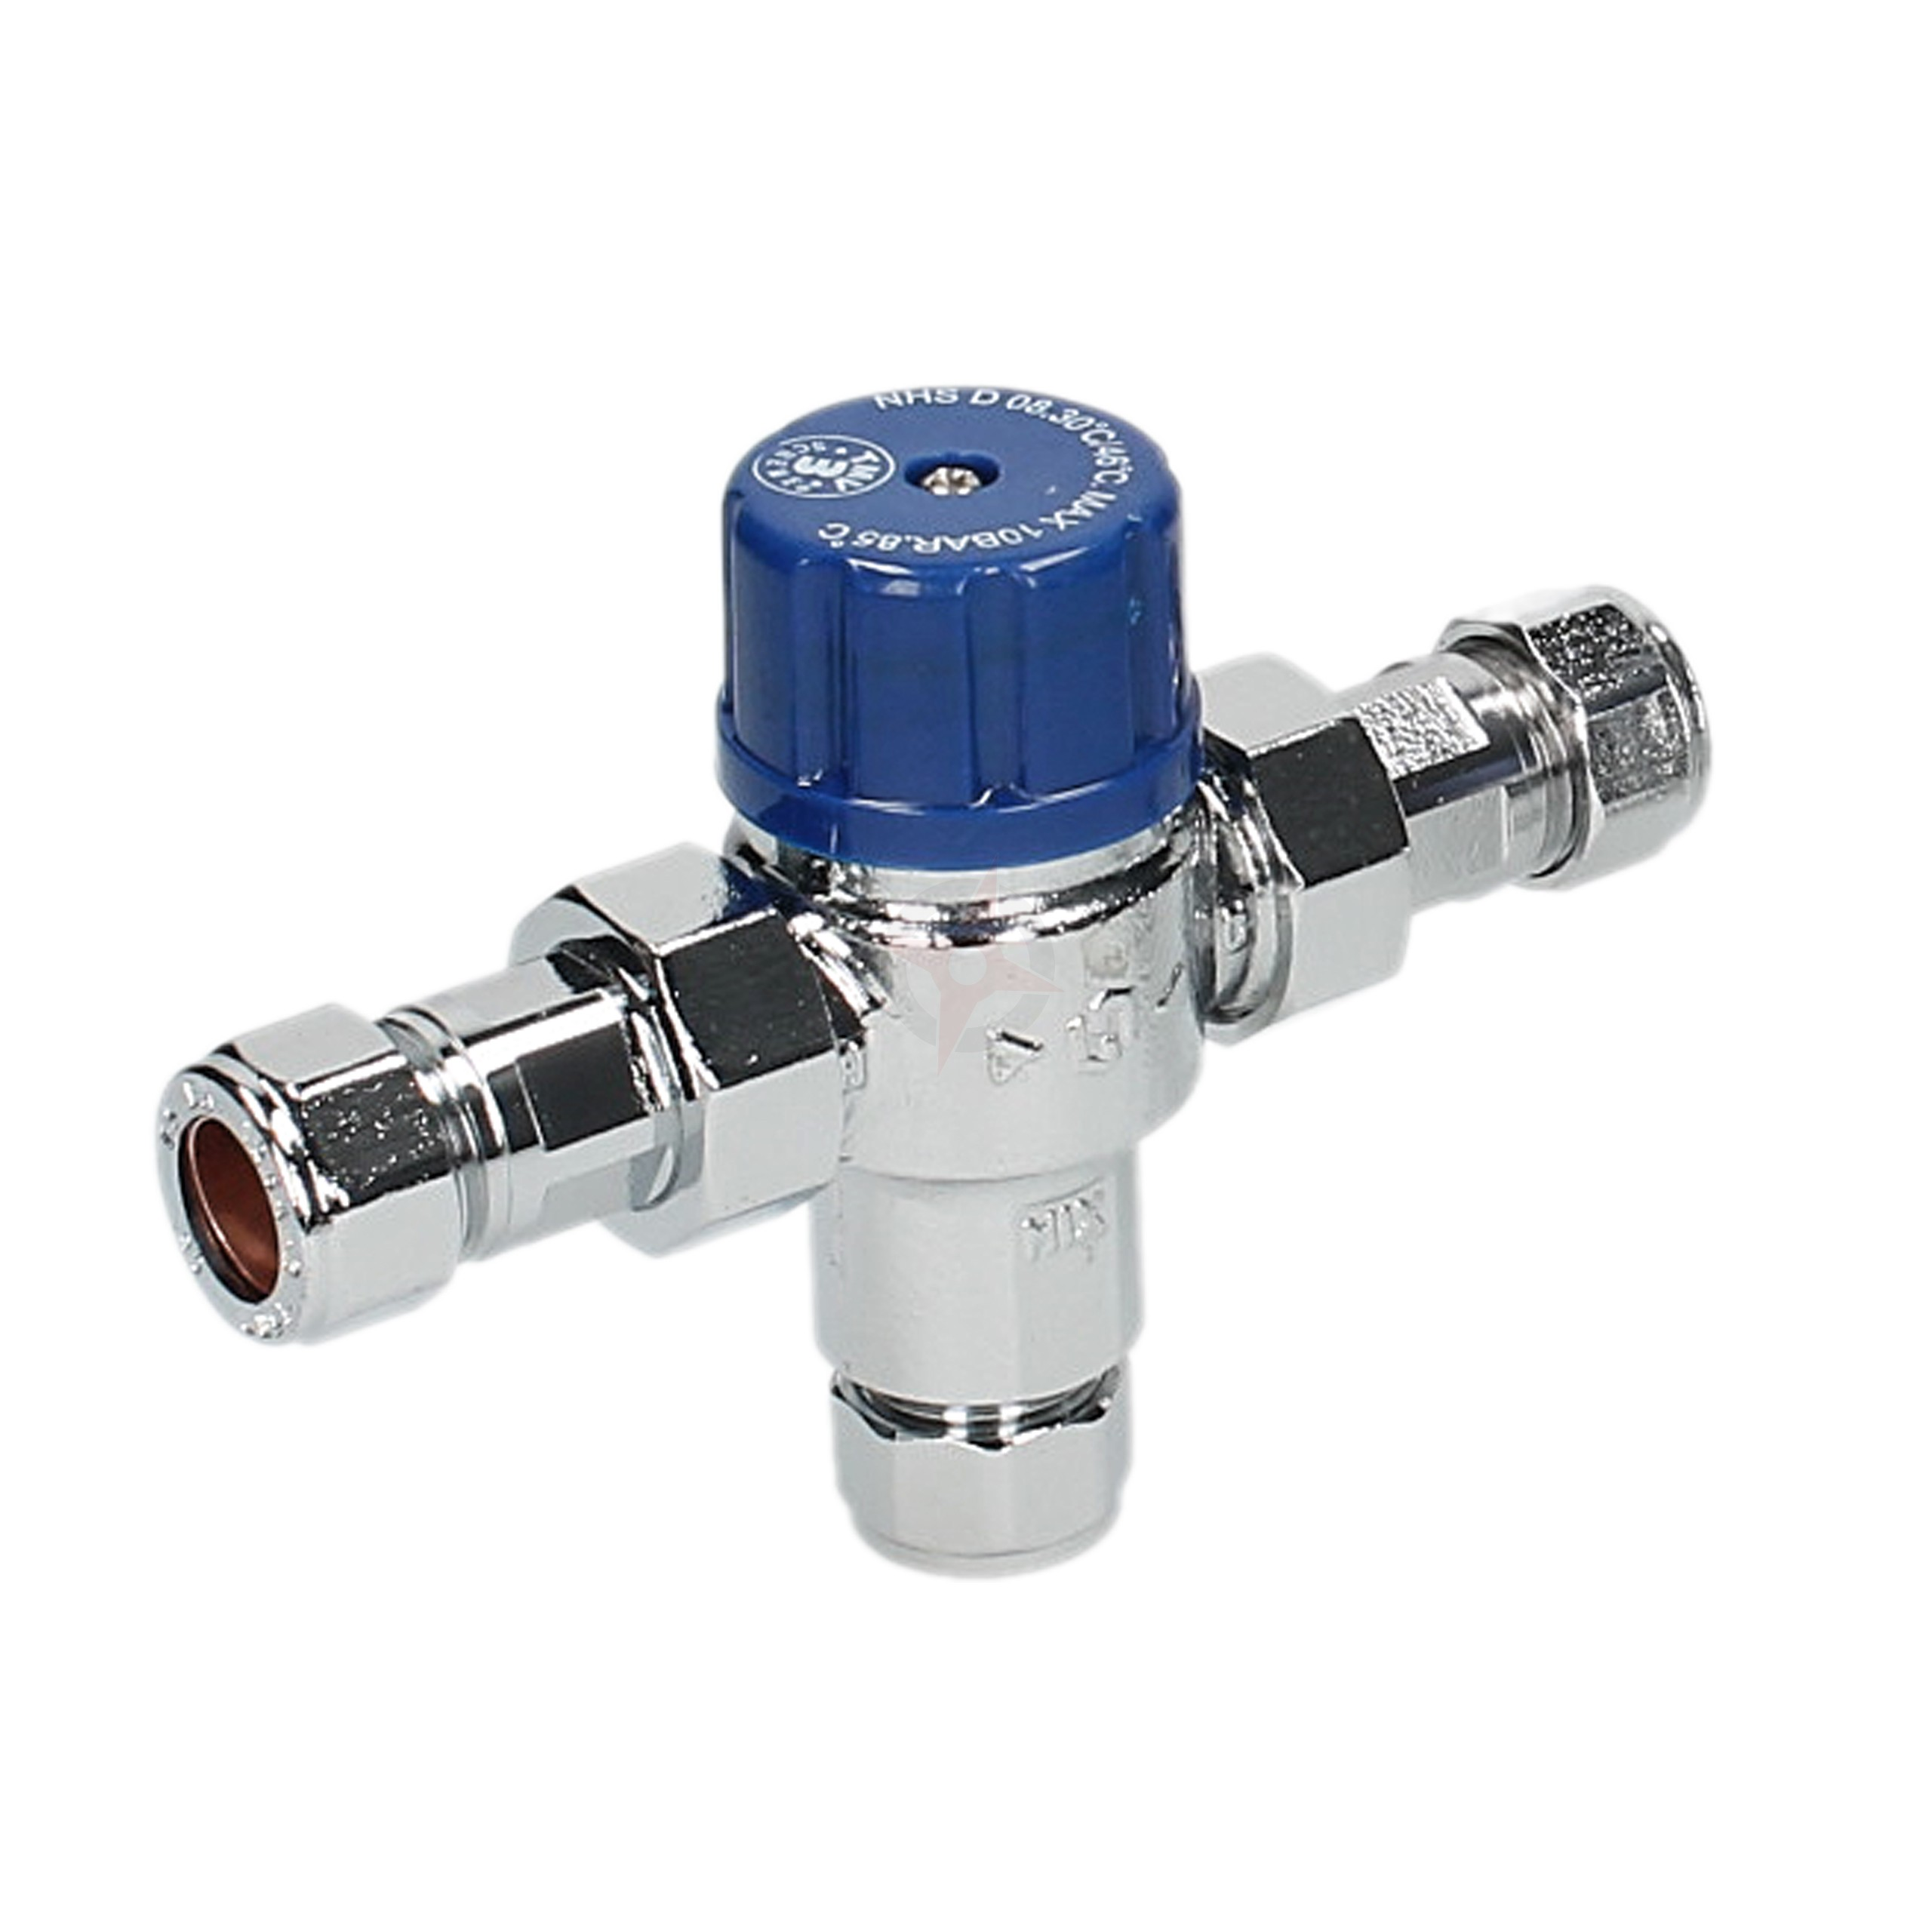 Yorhe 15mm TMV2/3 Thermostatic Mixing Valve